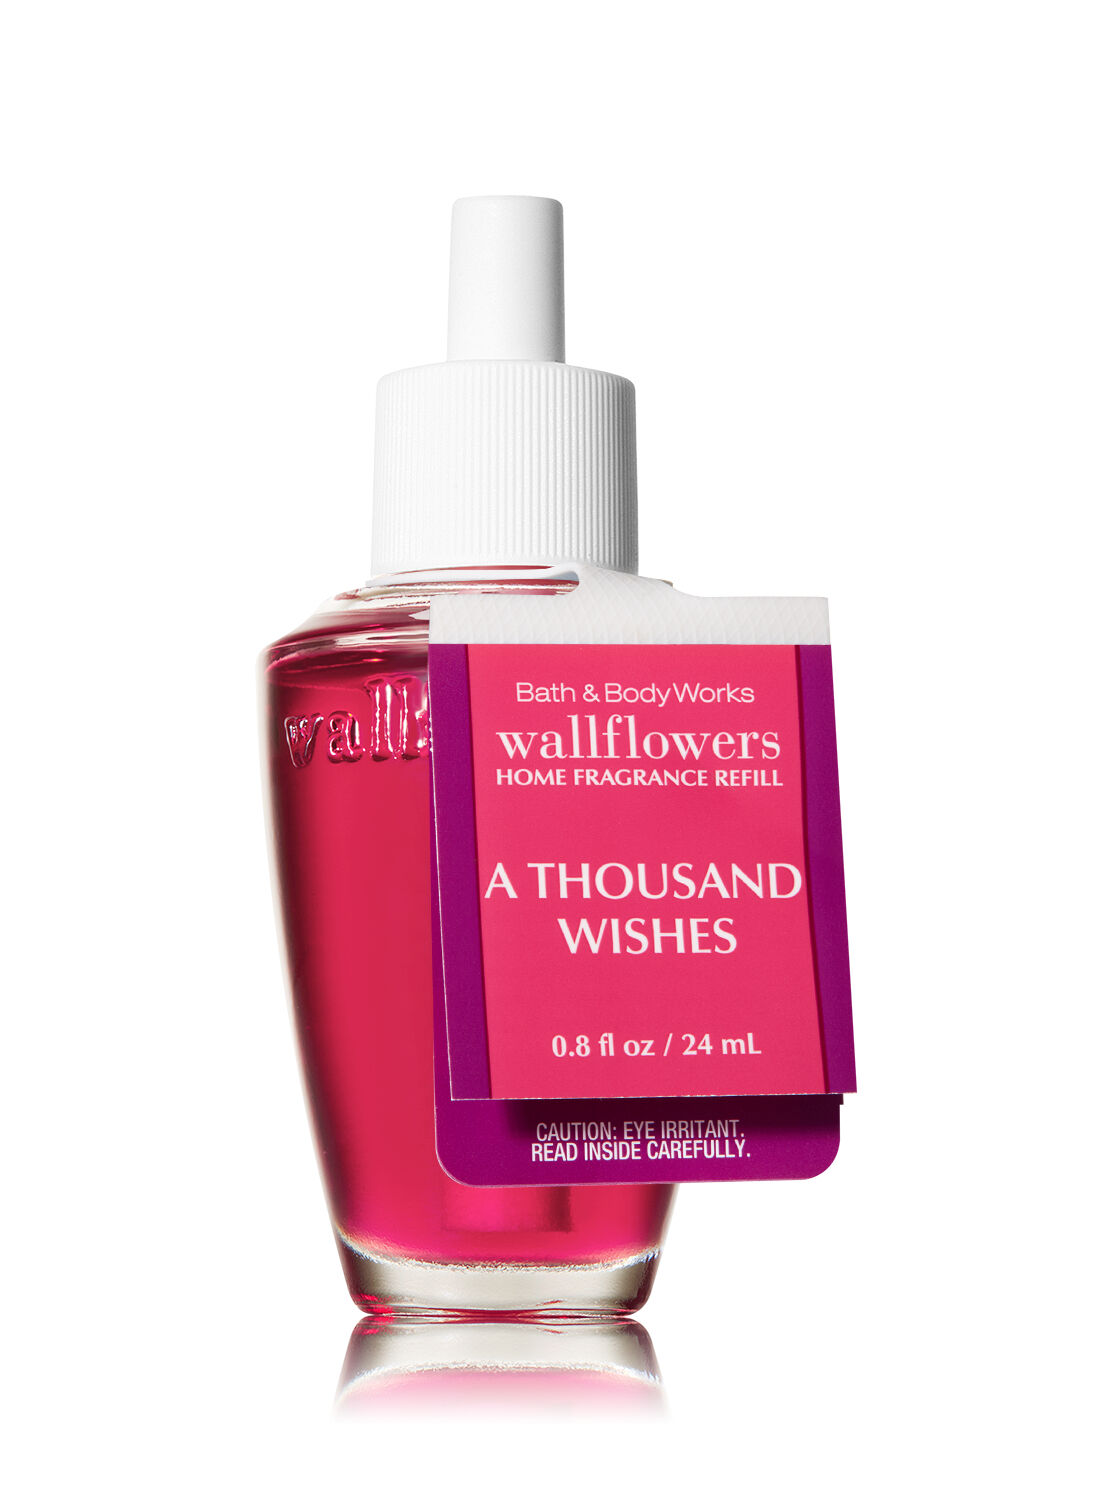 A Thousand Wishes Wallflowers Fragrance Refill Bath And Body Works